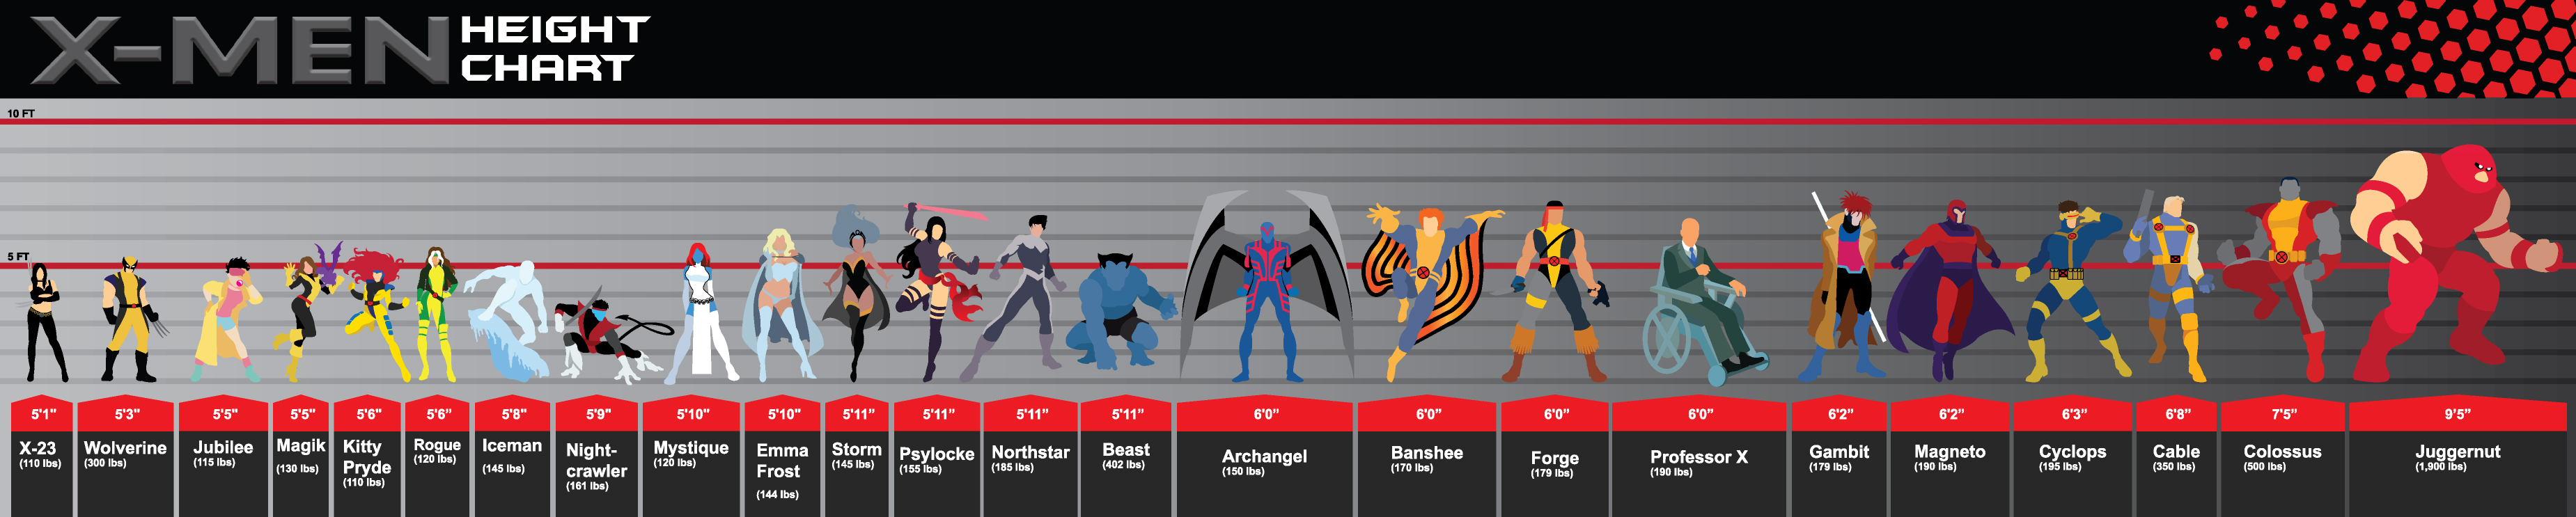 X-Men Height Chart Infographic